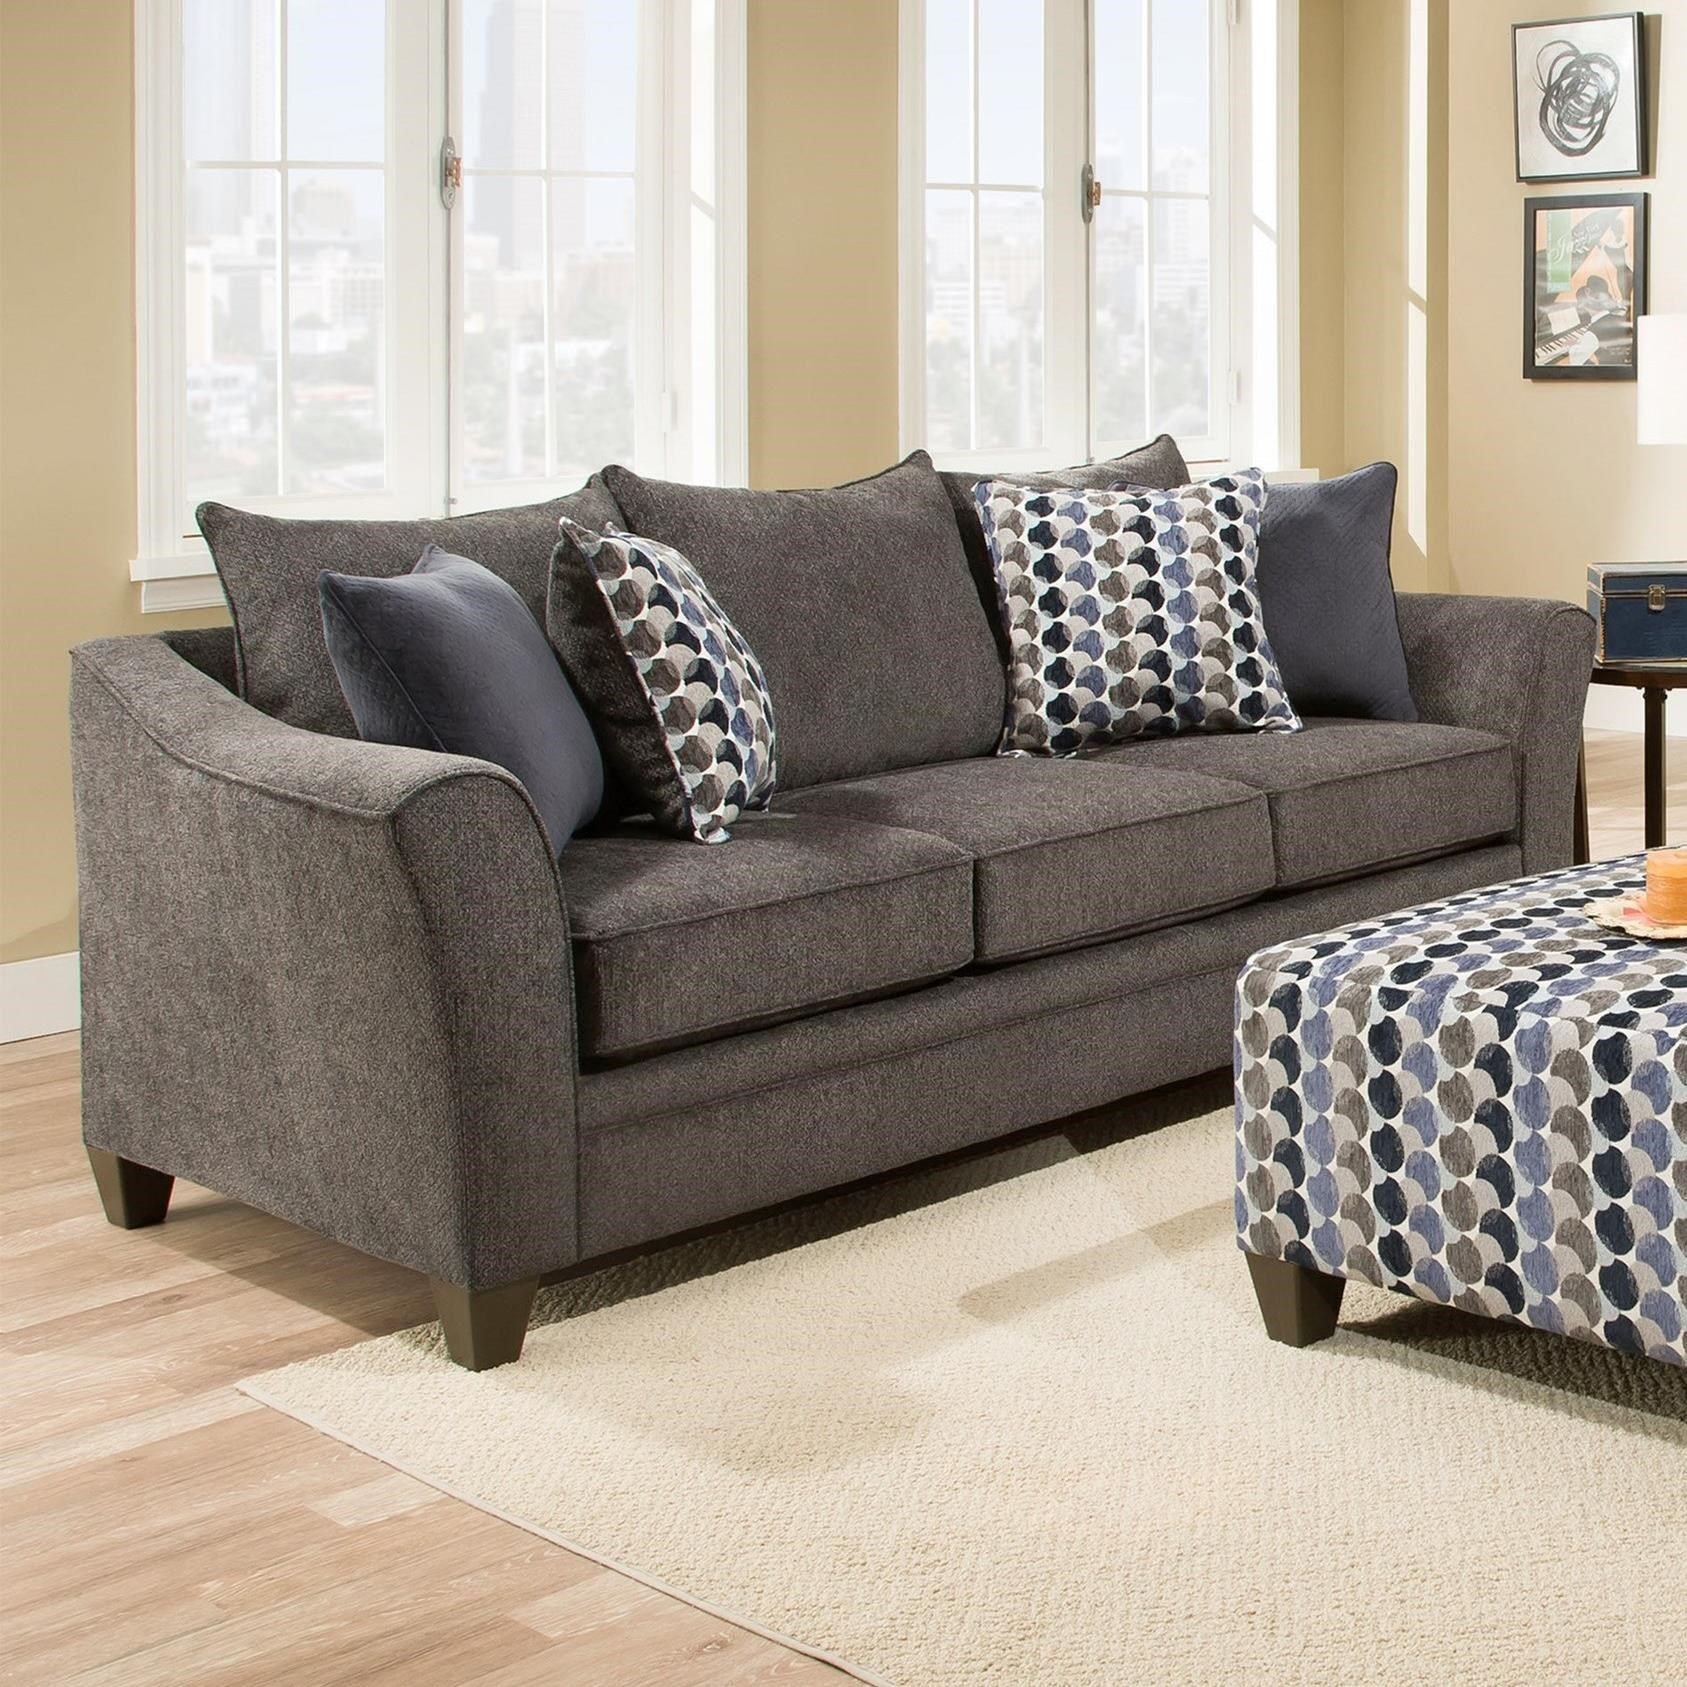 8642 transitional sectional sofa with chaise by albany van bed sofas 911 3 seater large rolled